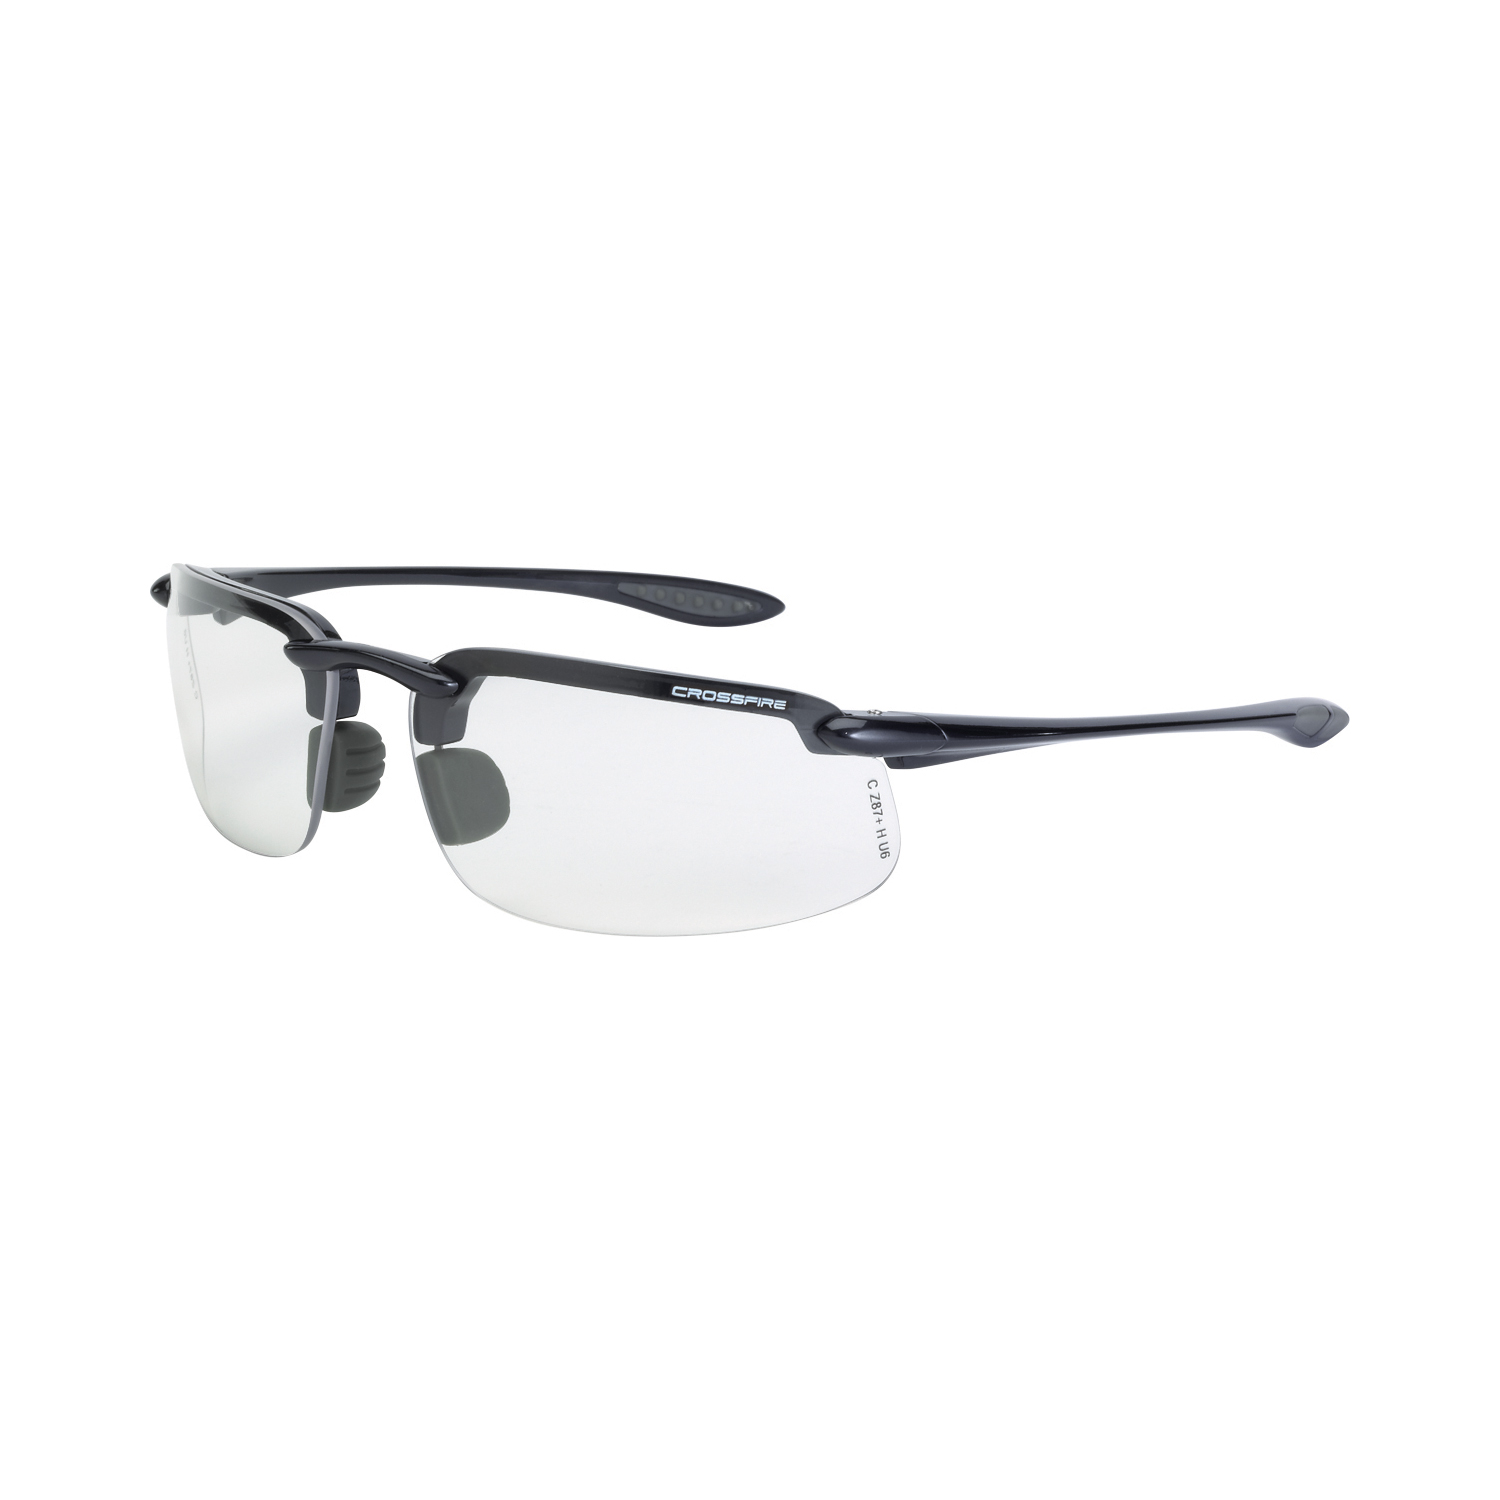 Crossfire ES4 Premium Safety Eyewear